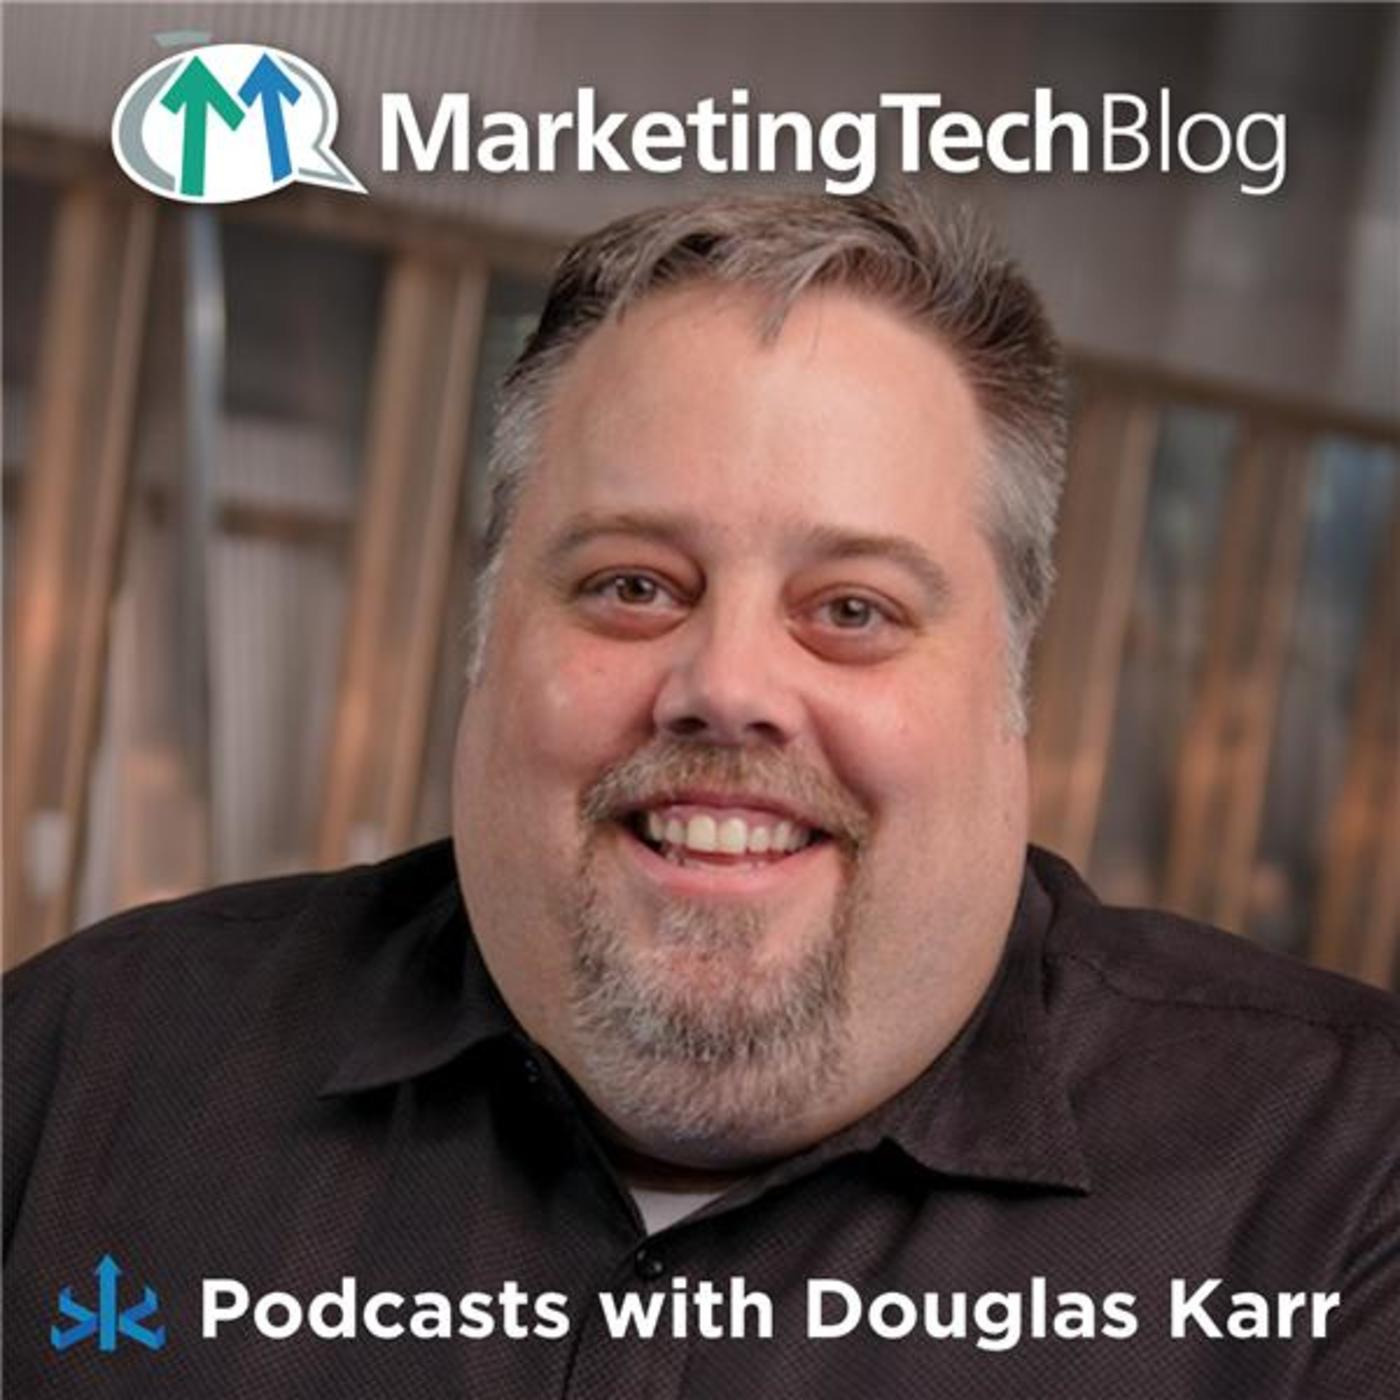 Marketing Technology with Douglas Karr